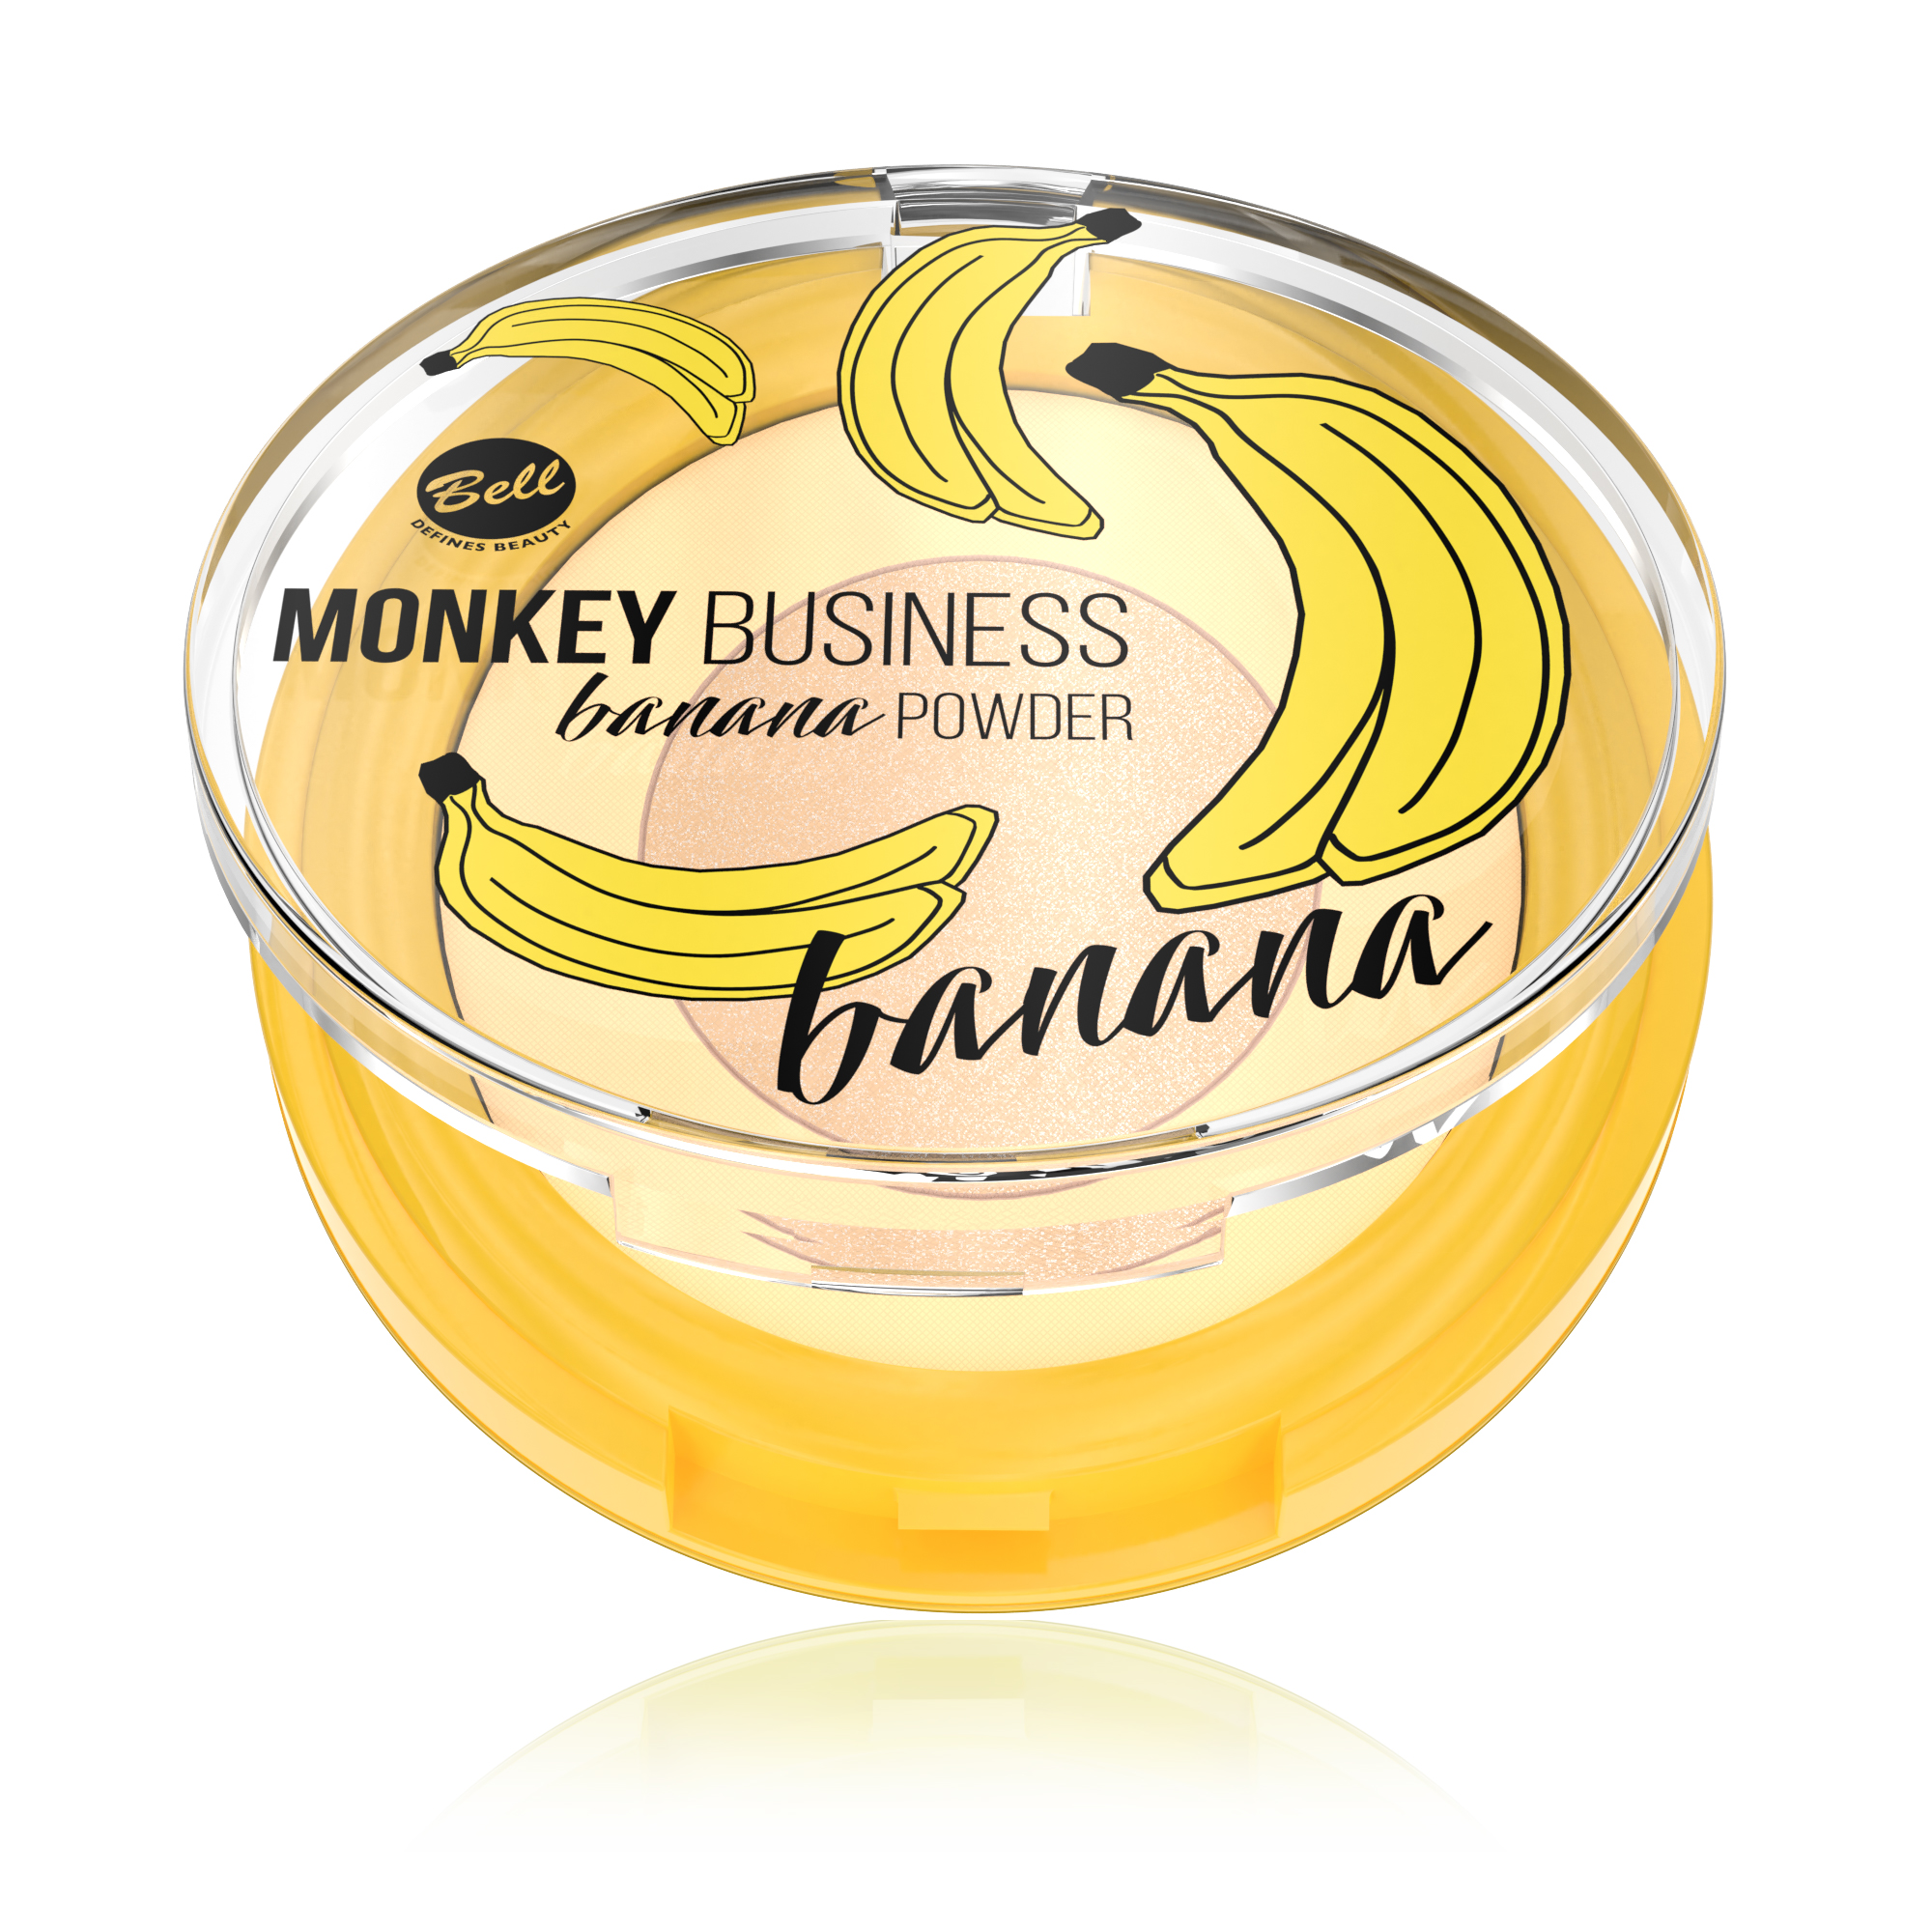 Monkey Business Banana Powder